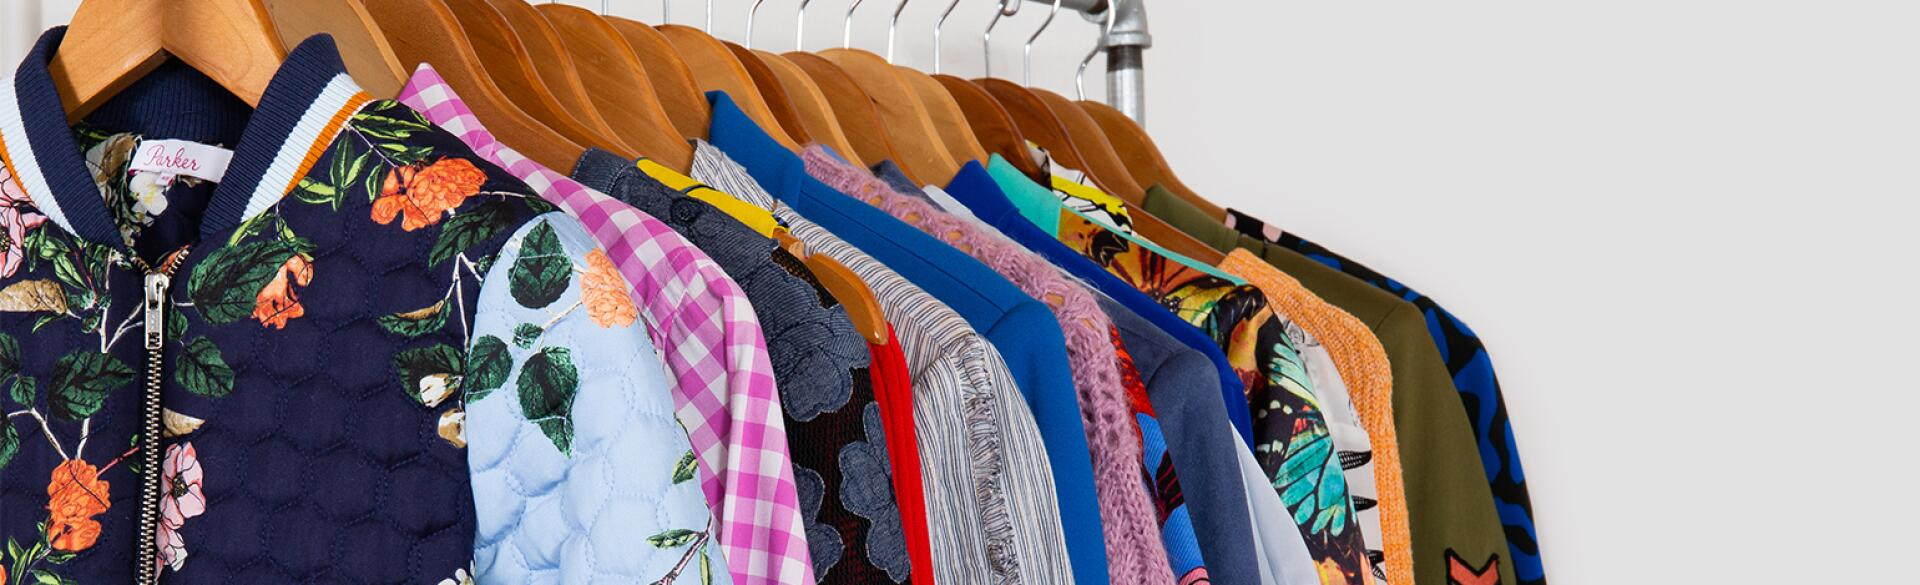 image of clothes on rack by armoire